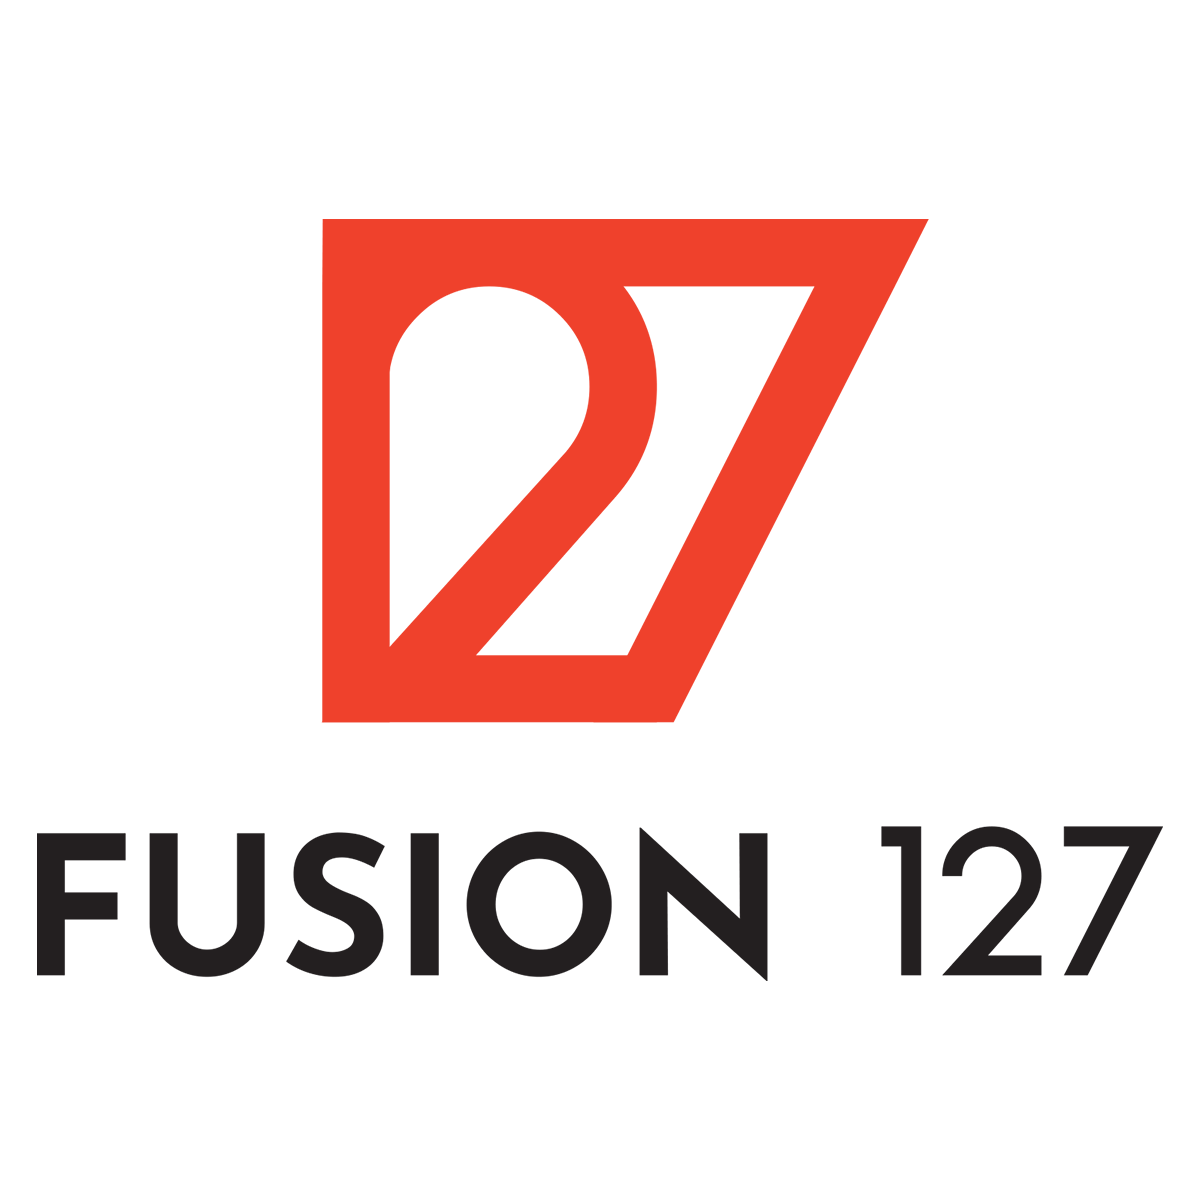 Fusion 127.png